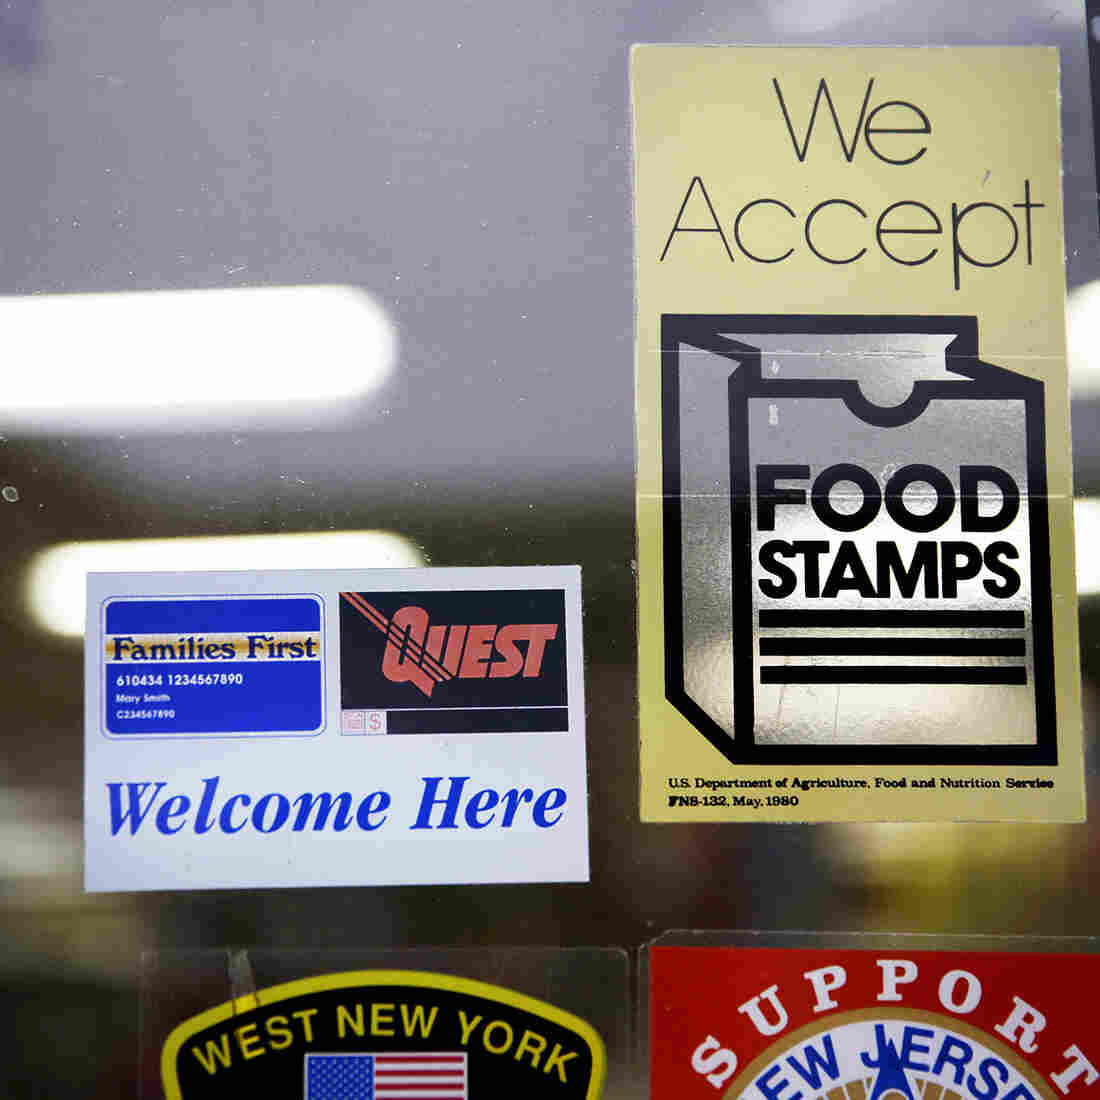 A supermarket displays stickers indicating it accepts food stamps in West New York, N.J., in January 2015.